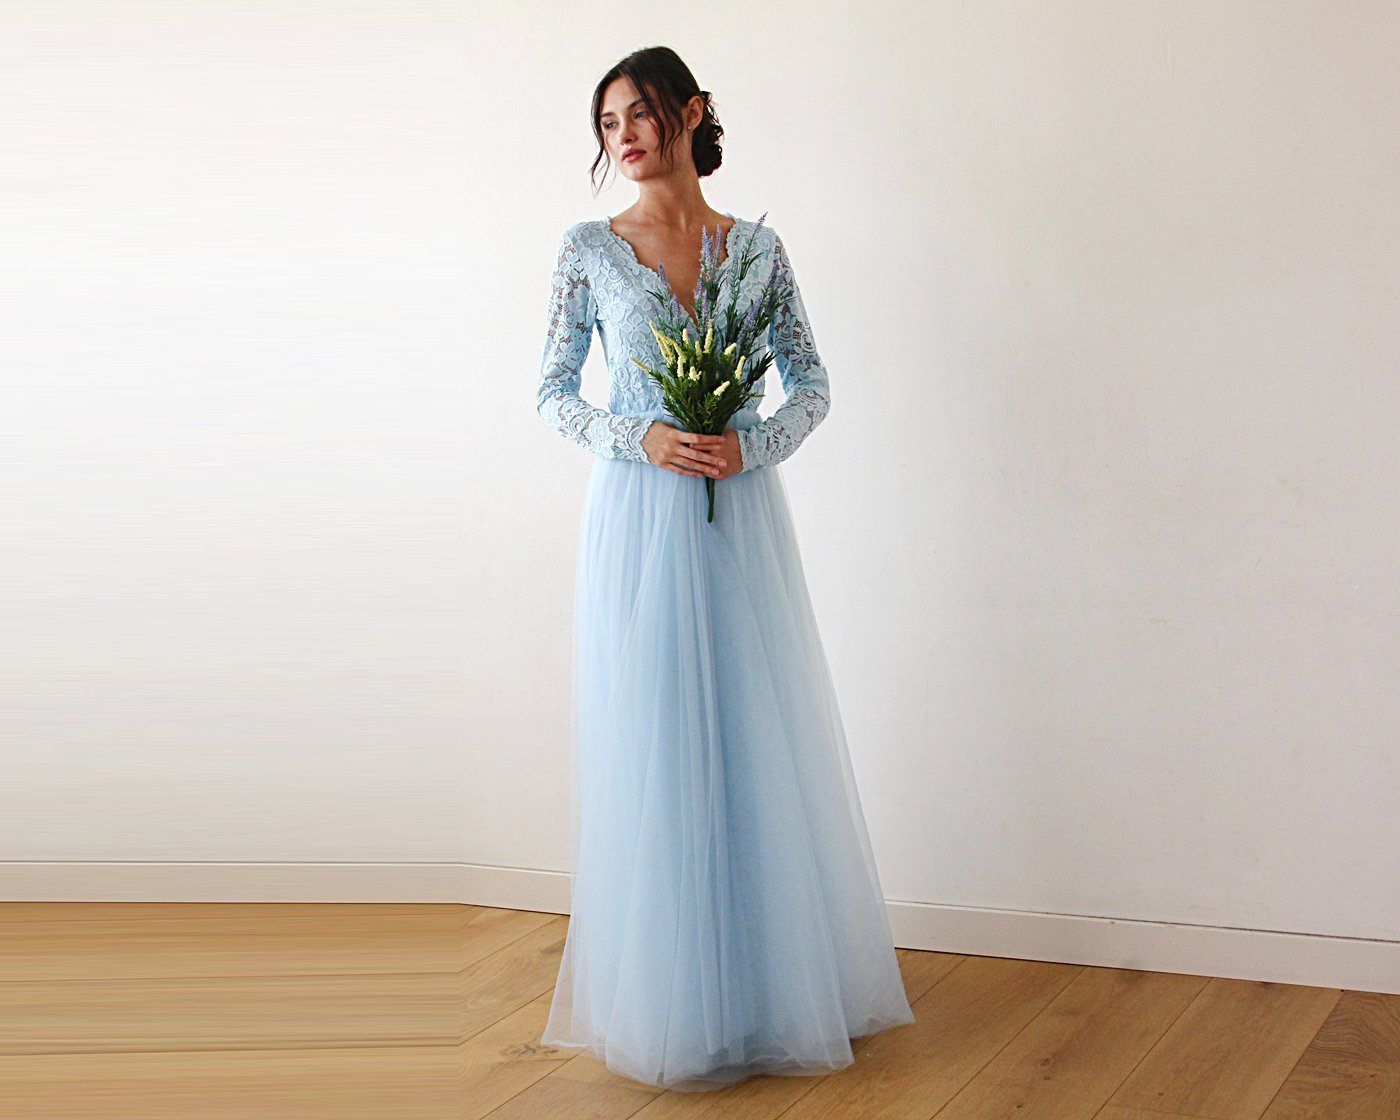 bf5f723a998b4 Light Blue Tulle and Lace Long Sleeve Wedding Maxi Dress 1125 -  Blushfashion ...